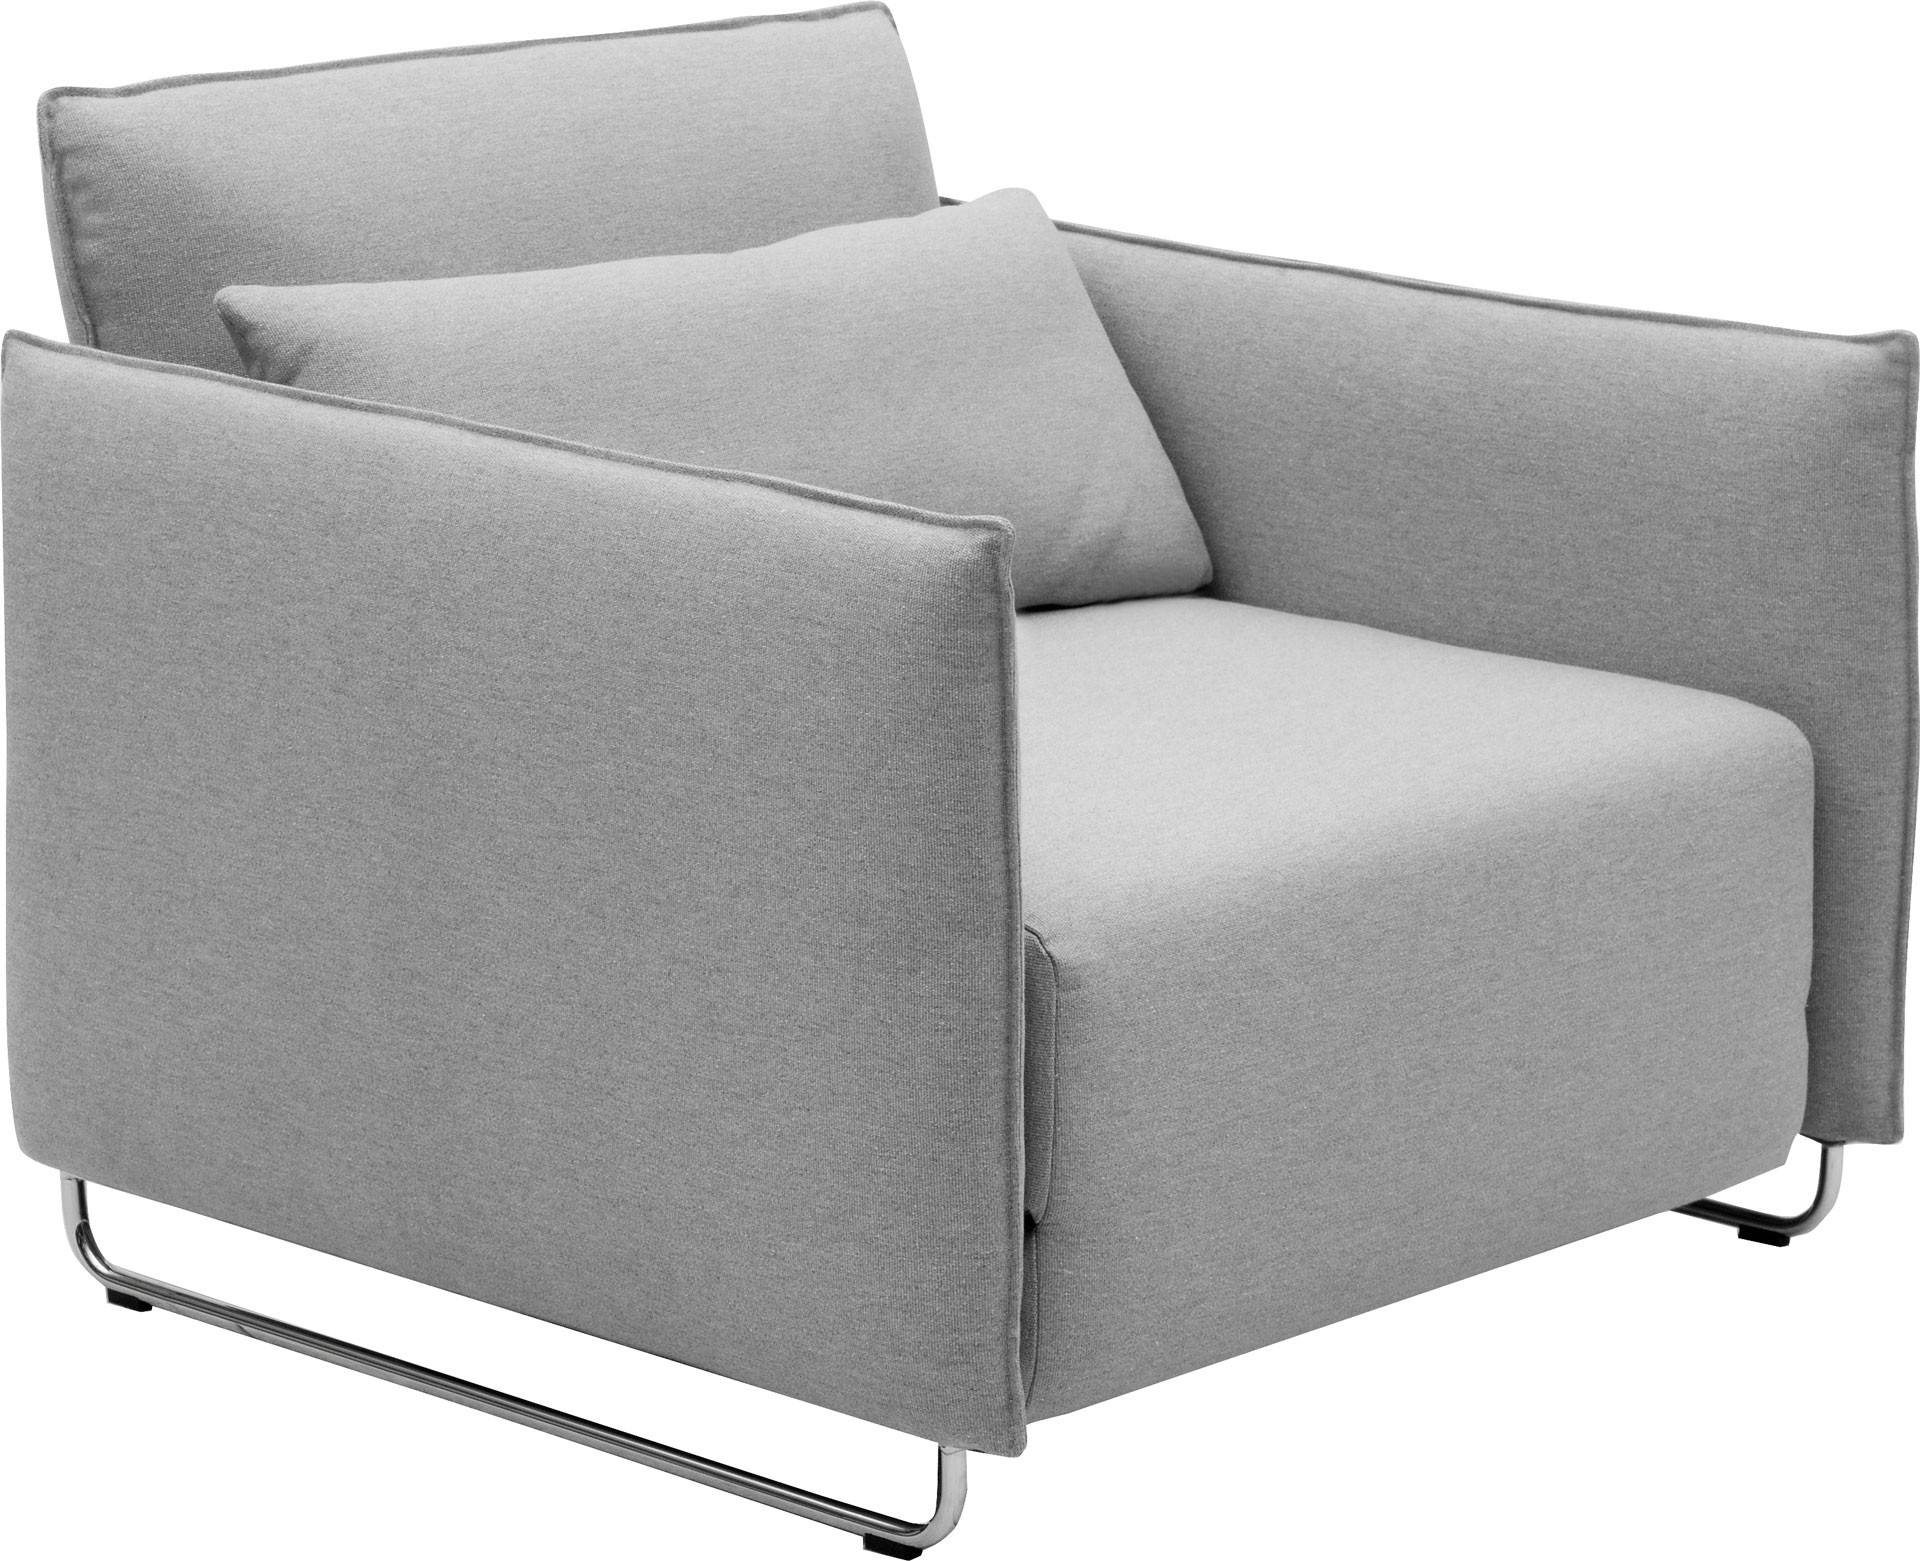 Sofas Center : Single Chair Sofa With Memory Foamsingle Foam pertaining to Single Chair Sofa Beds (Image 27 of 30)